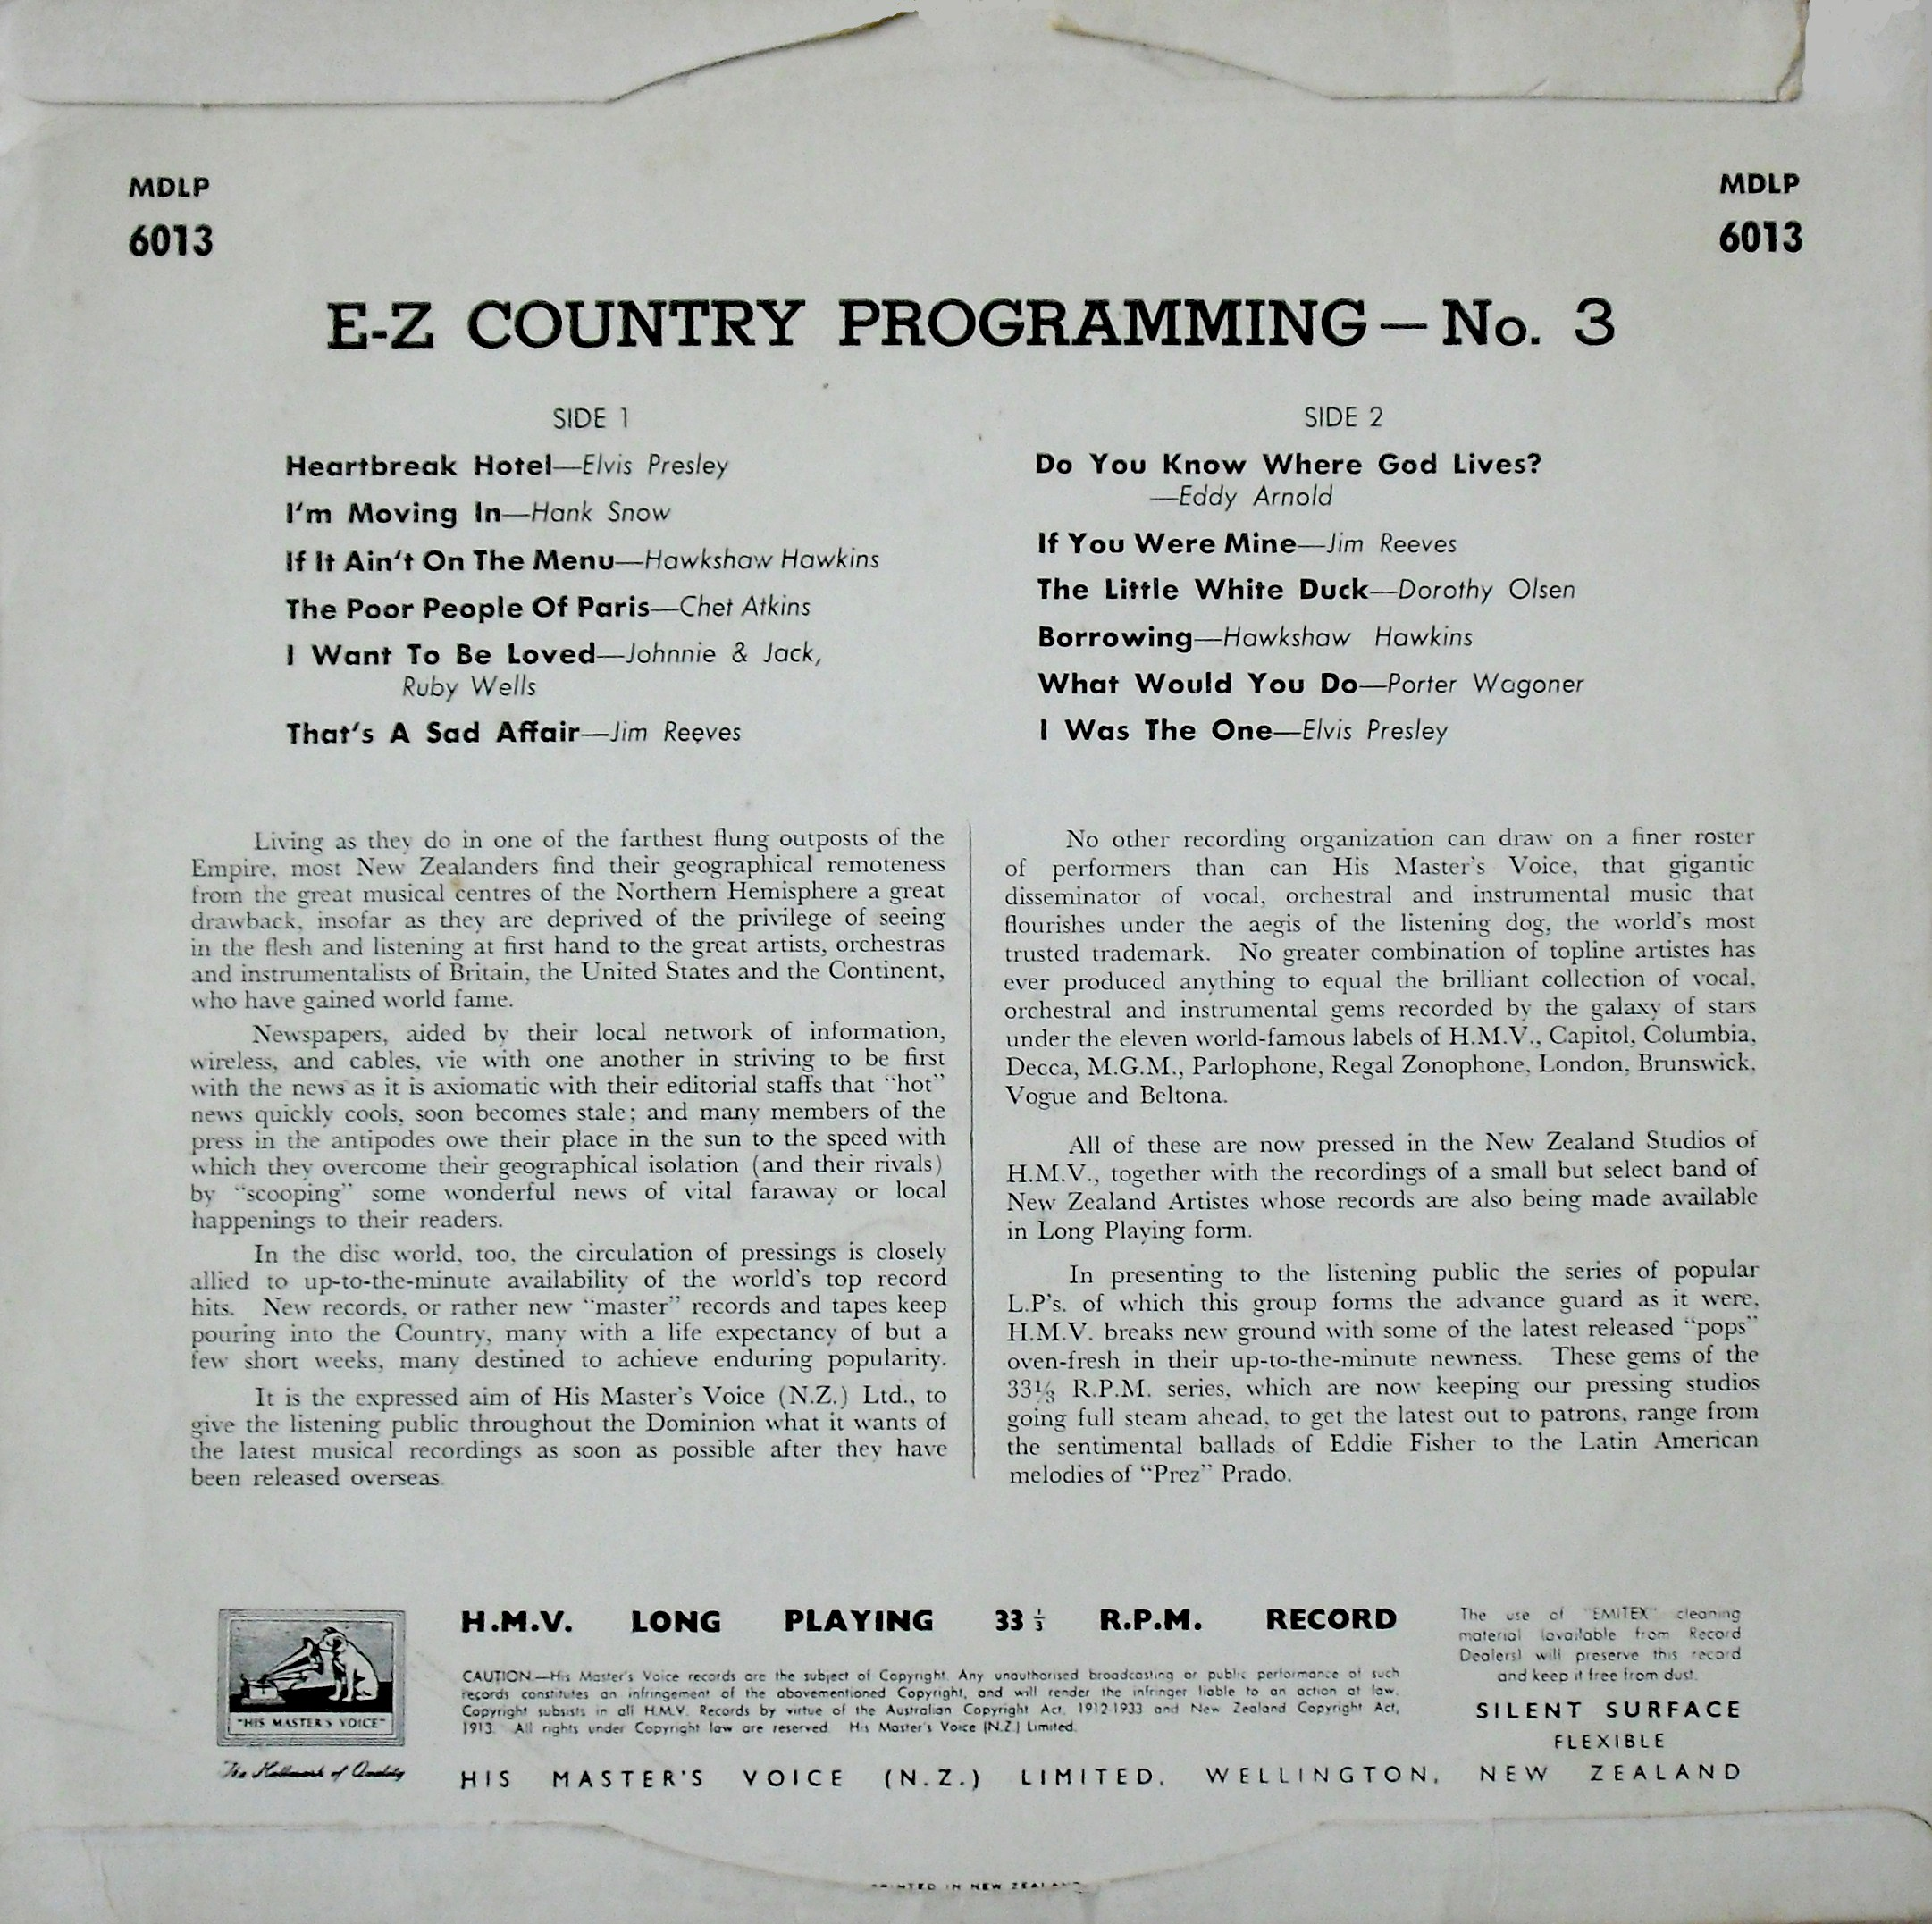 E-Z COUNTRY PROGRAMMING  02lxonb